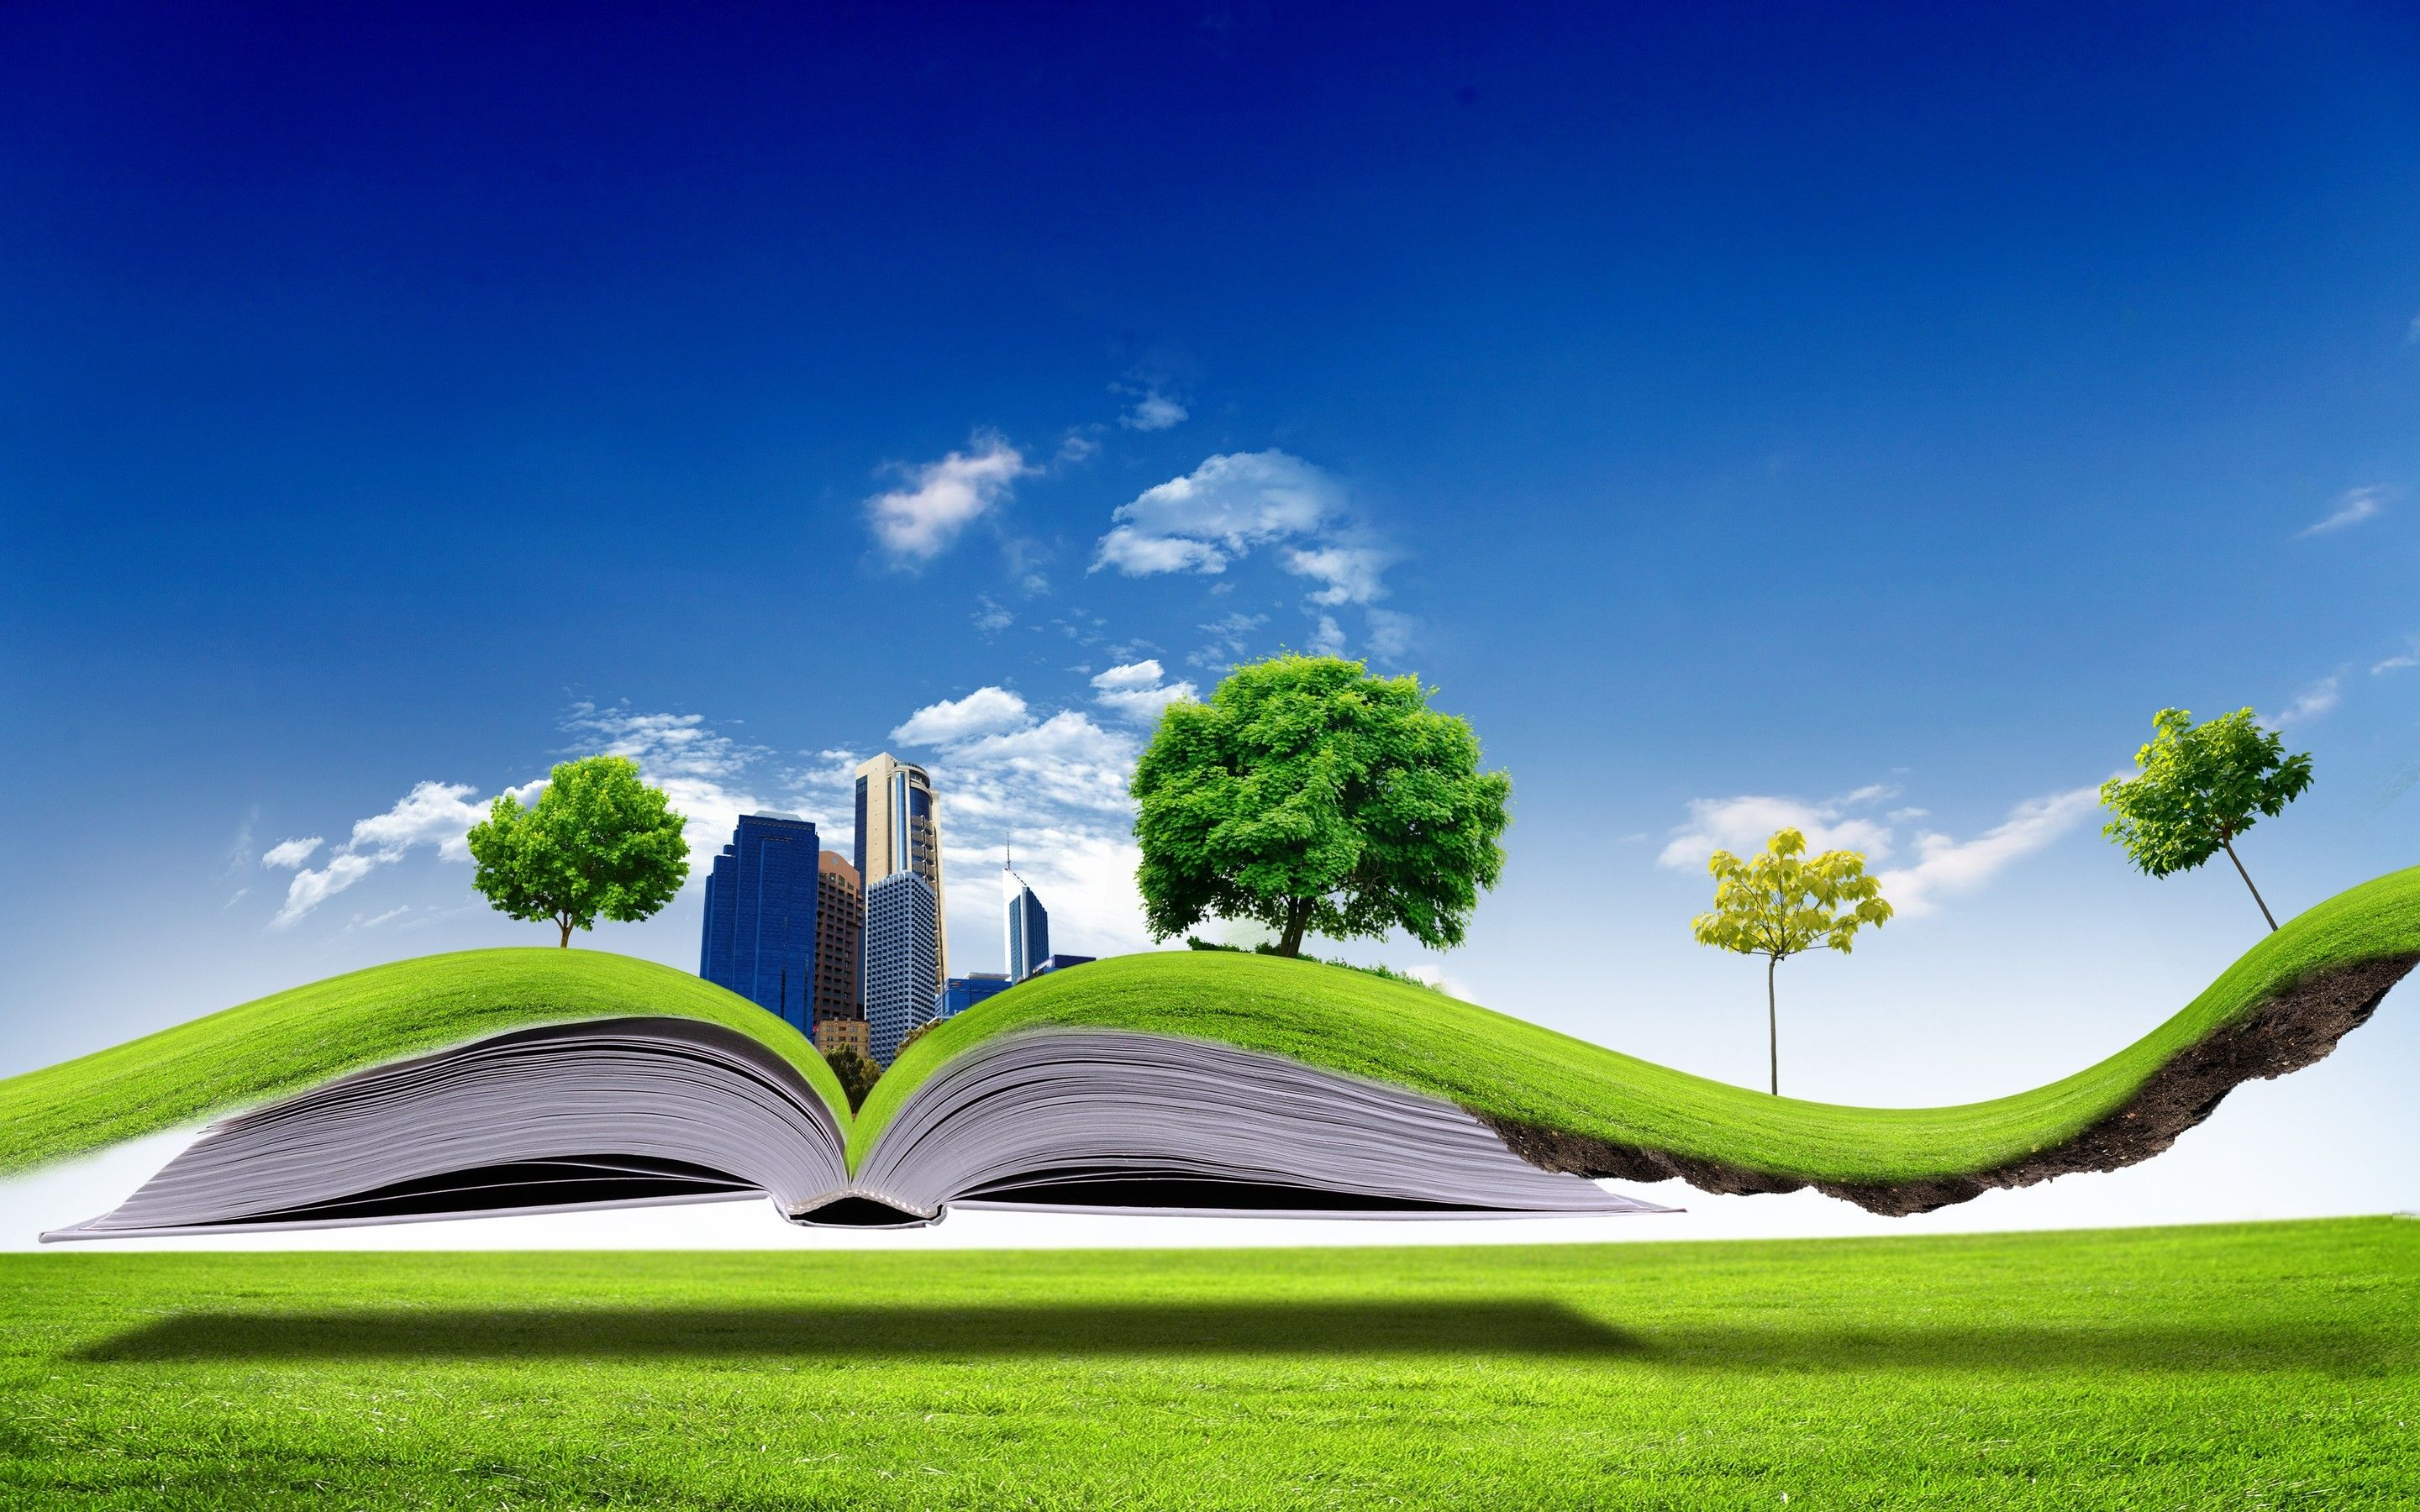 All Nature In One Book 3d Wallpaper Awesome 3d And Hd Rendered Wallpapers Download Beautiful Hd Wallpaper Nature Images Hd Nature Wallpaper Nature Desktop